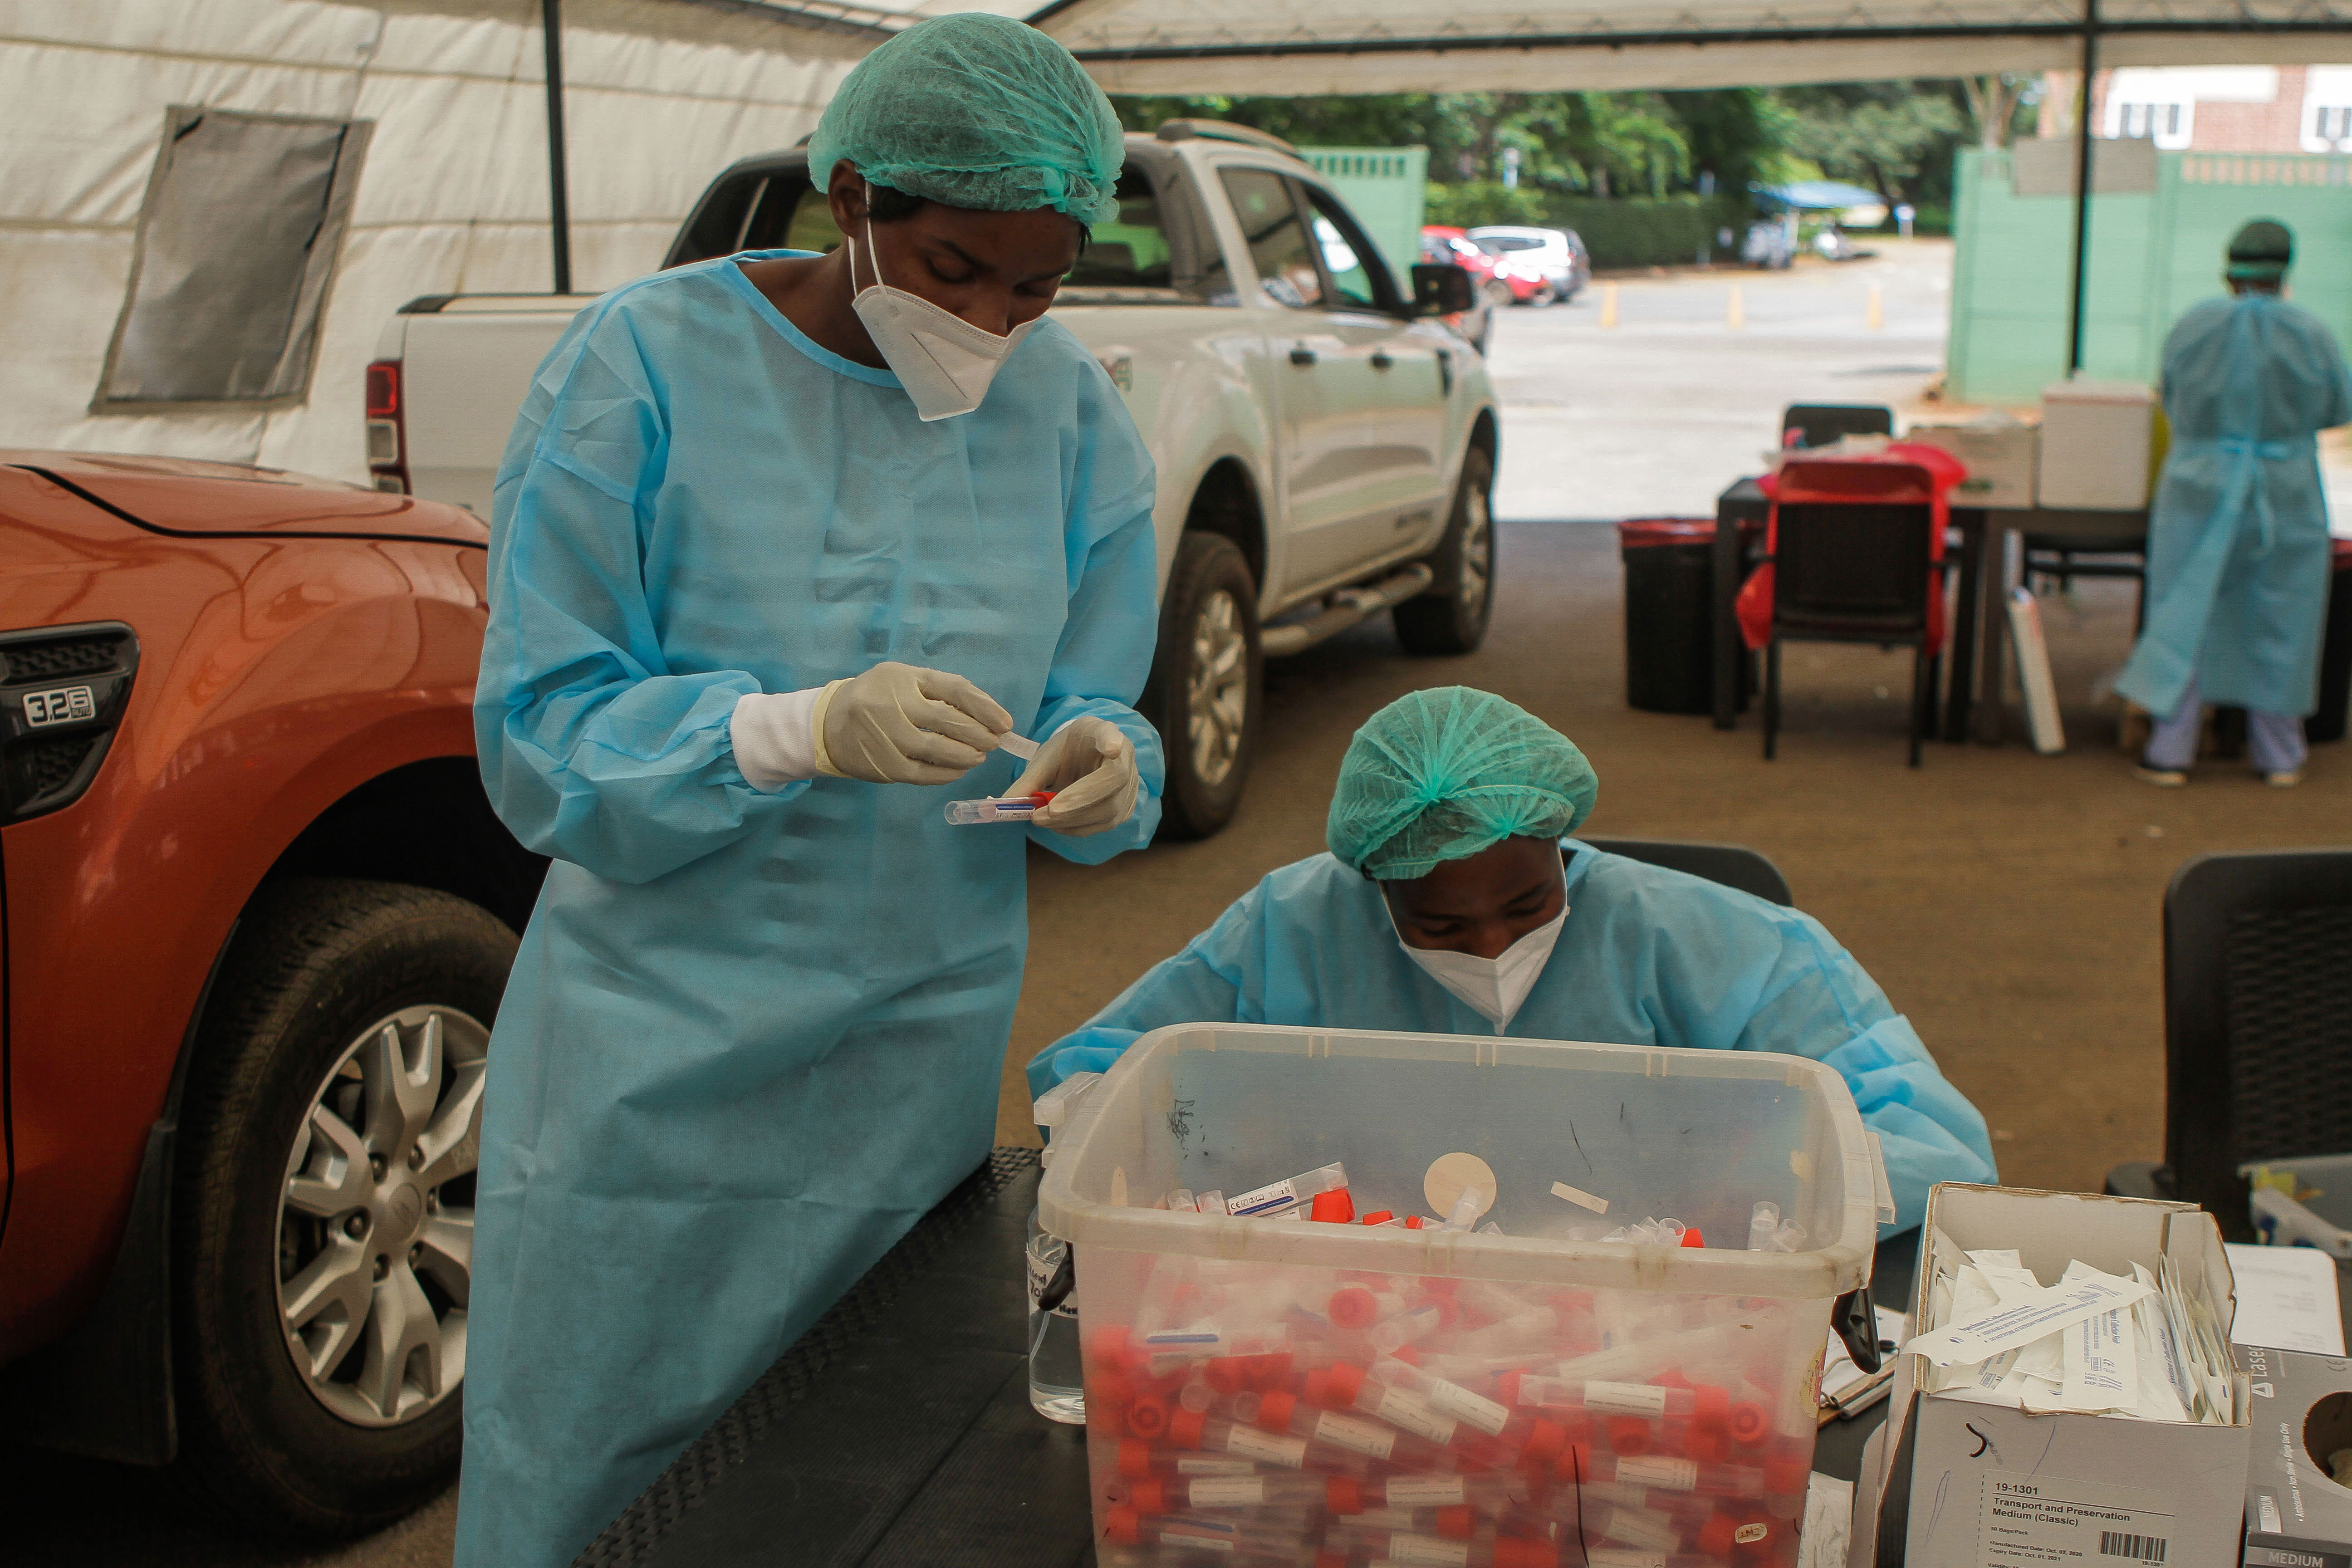 Lancet Clinical Laboratories employees in Harare, Zimbabwe, secure samples after conducting Covid-19 tests at a St Anne's Hospital drive thru facility on January 22.